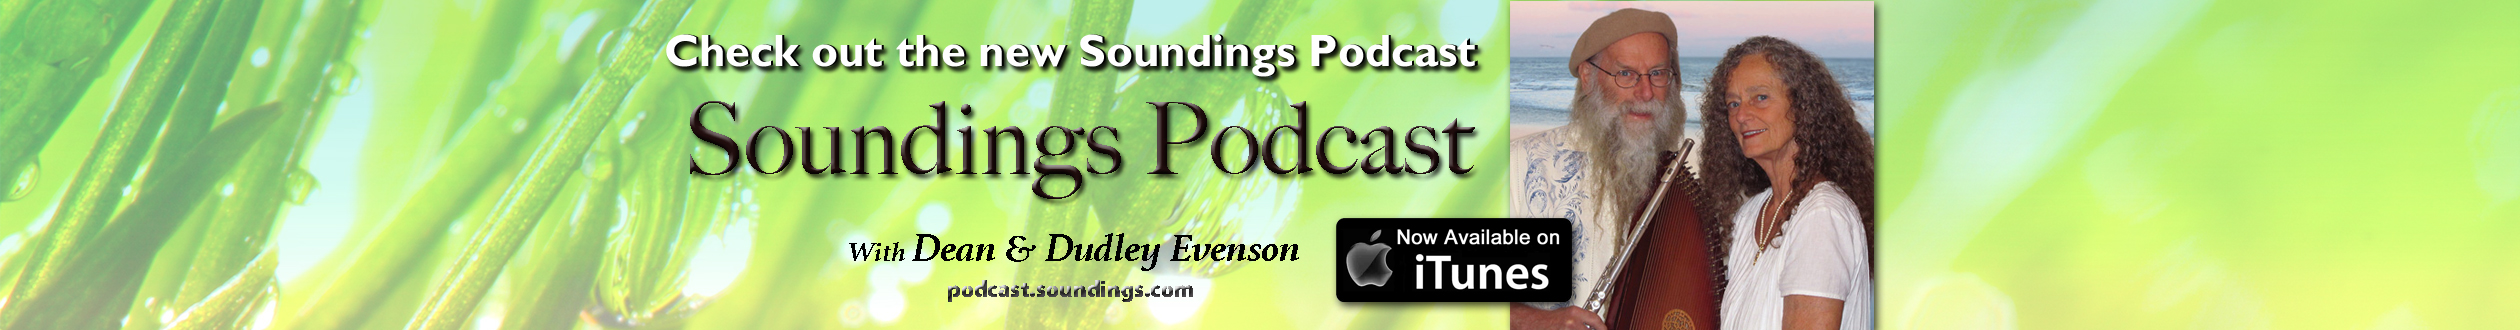 Soundings-Podcast-Slider1_edited-9